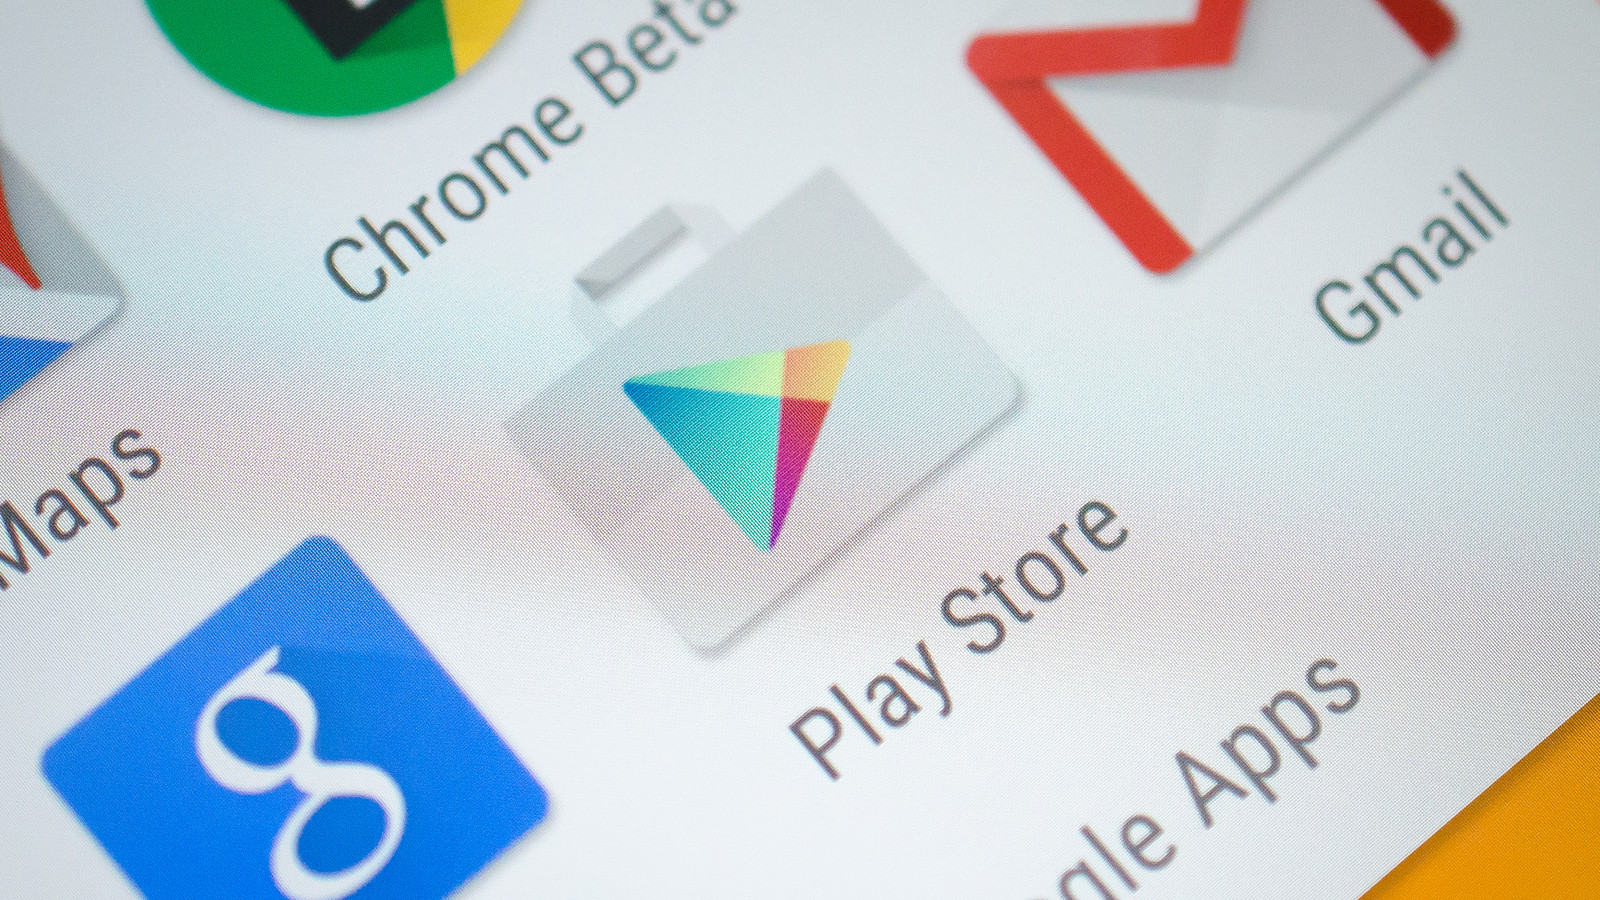 google-play-icon-closeup-1600x900x